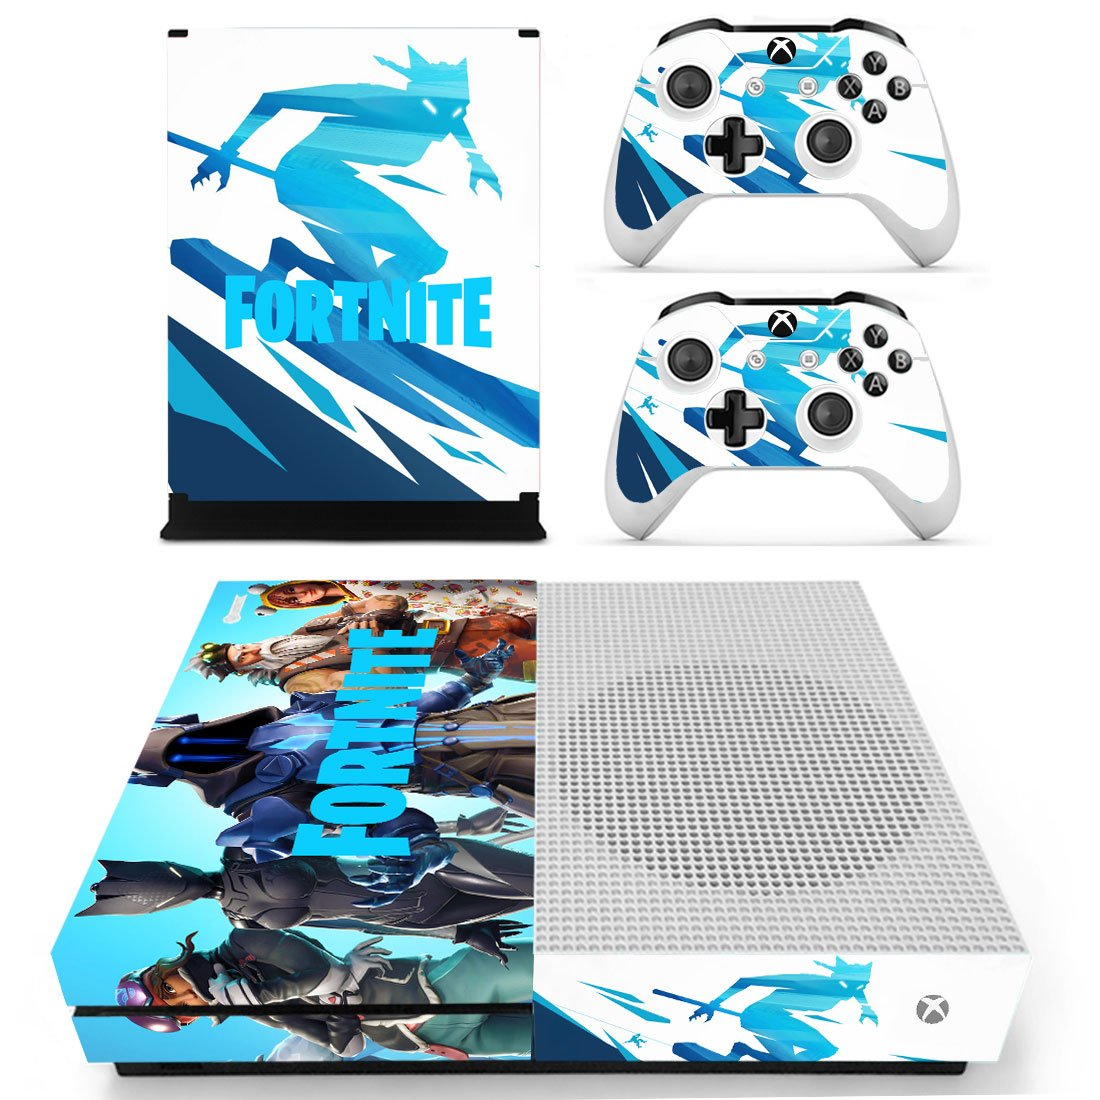 Fortnite Xbox One S Skin Sticker Wrap